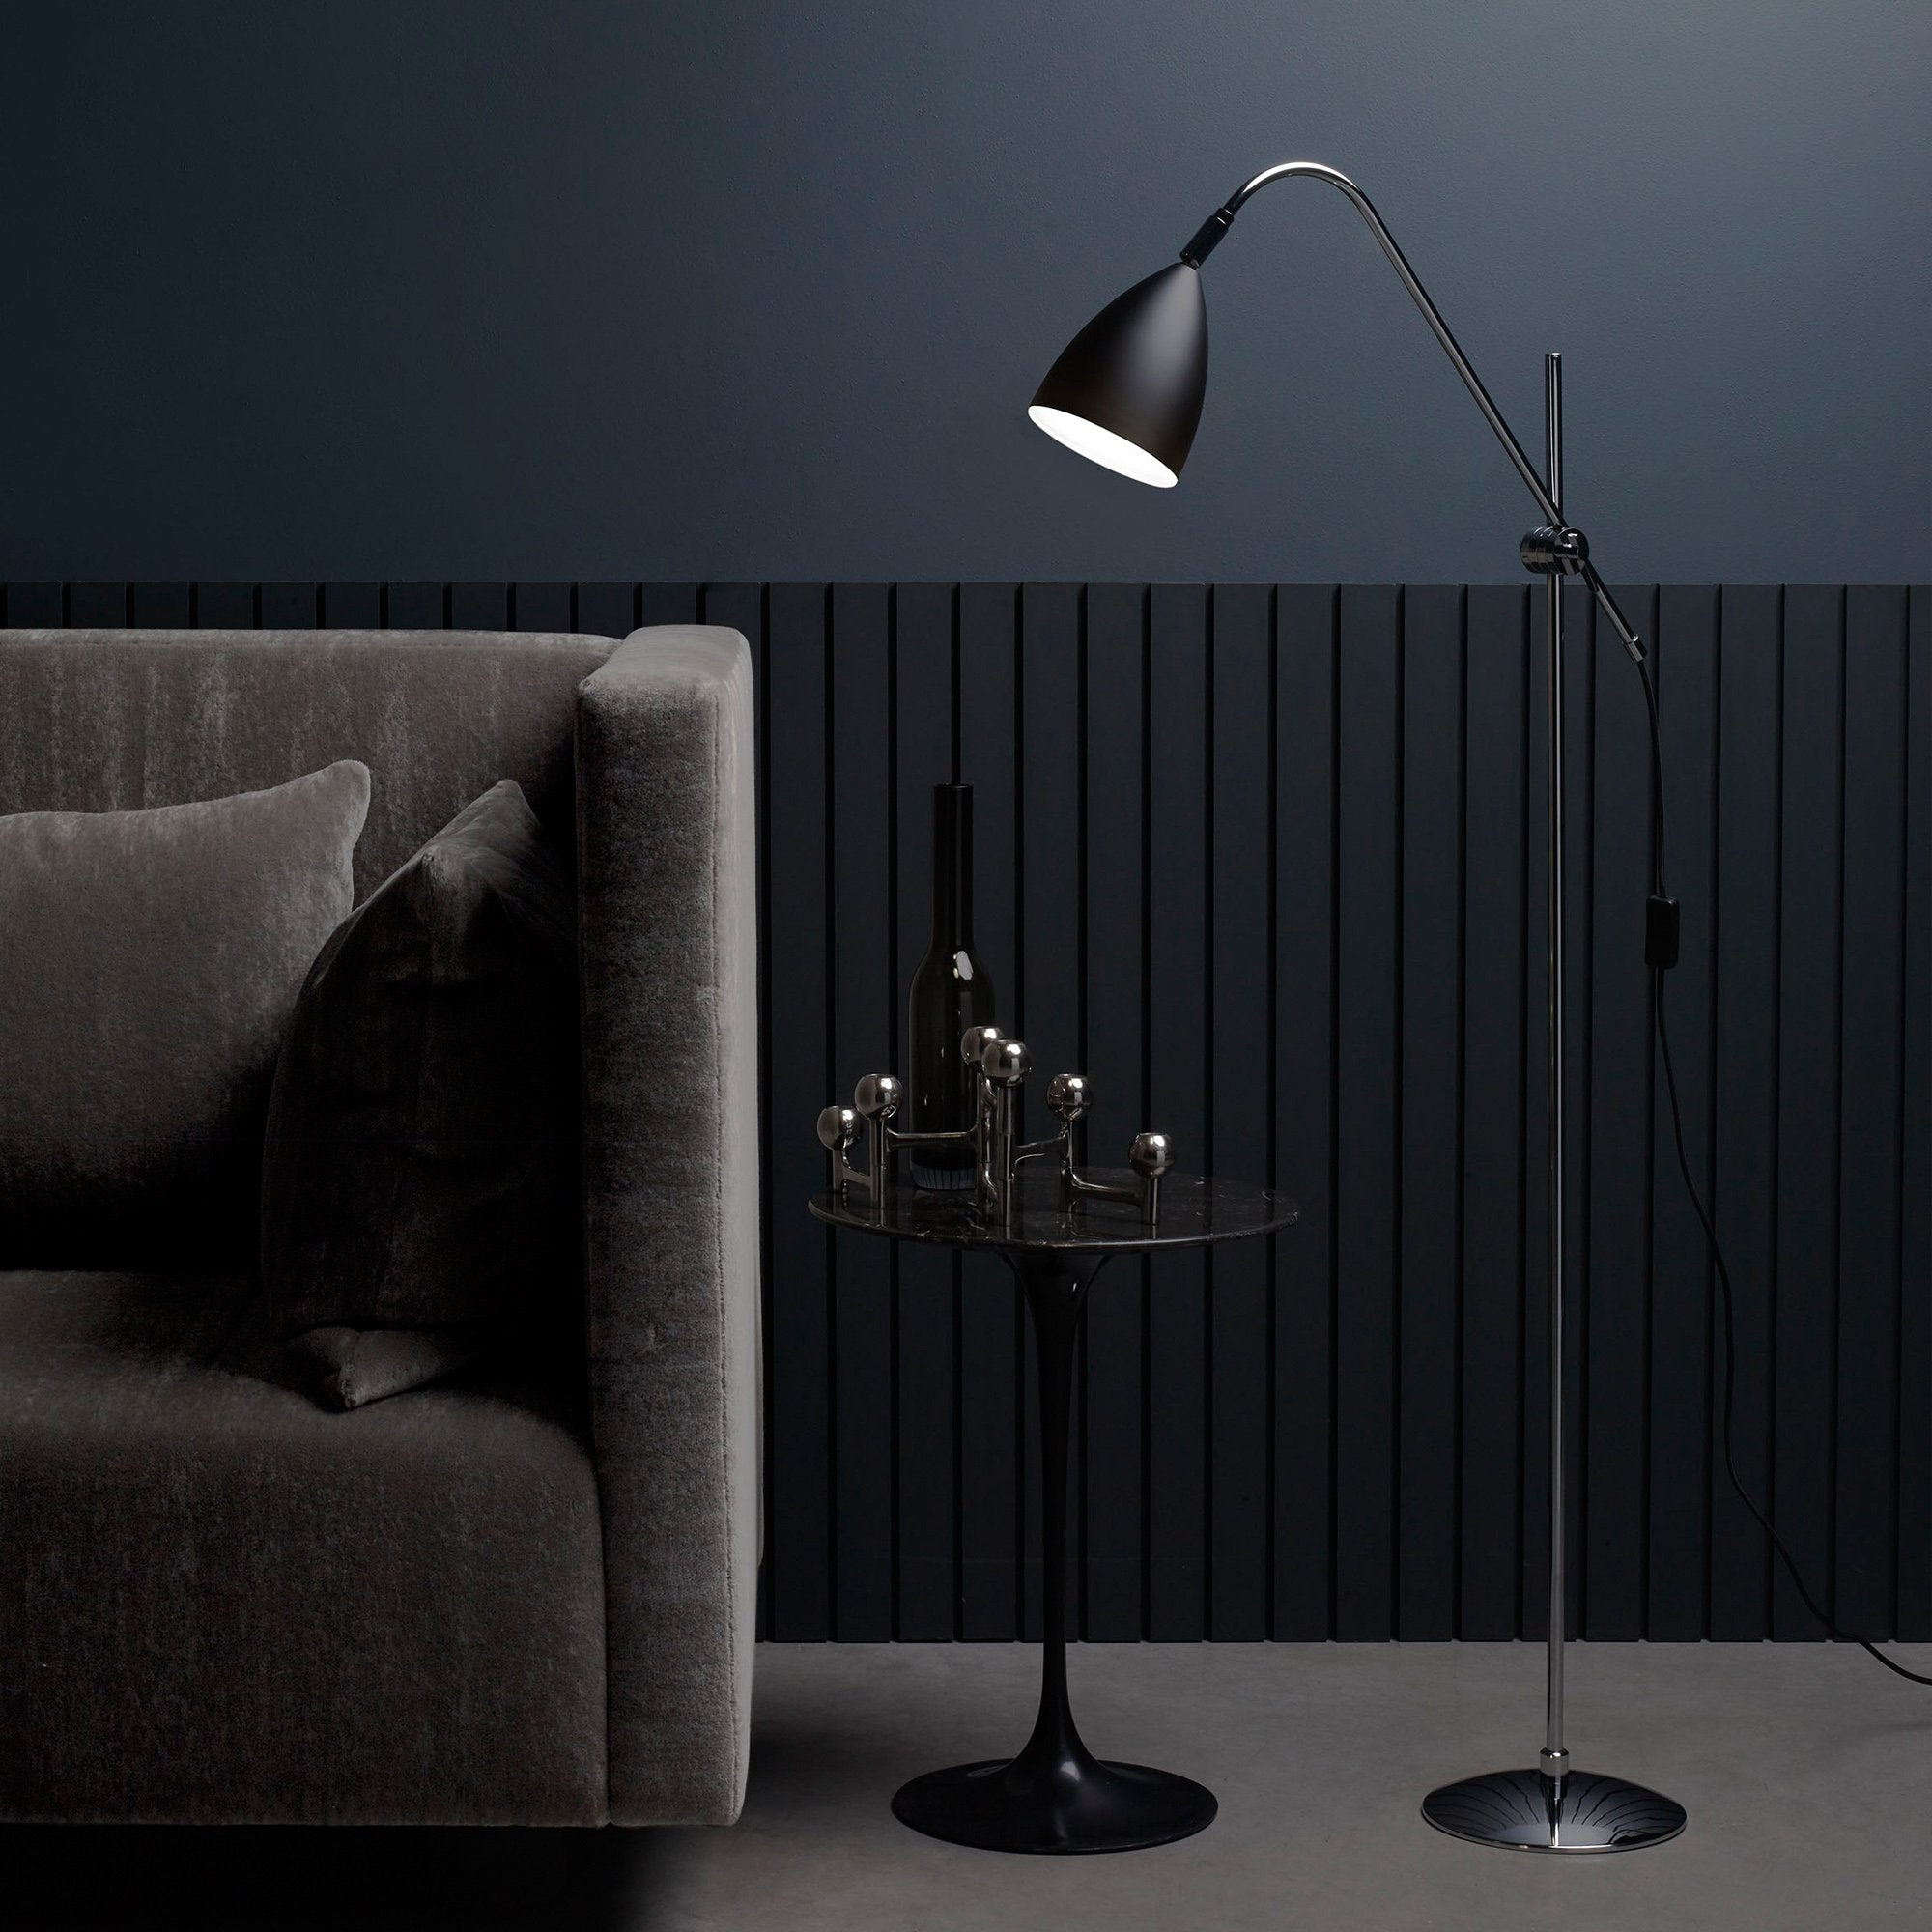 Astro Lighting Office Joel Floor Lamp